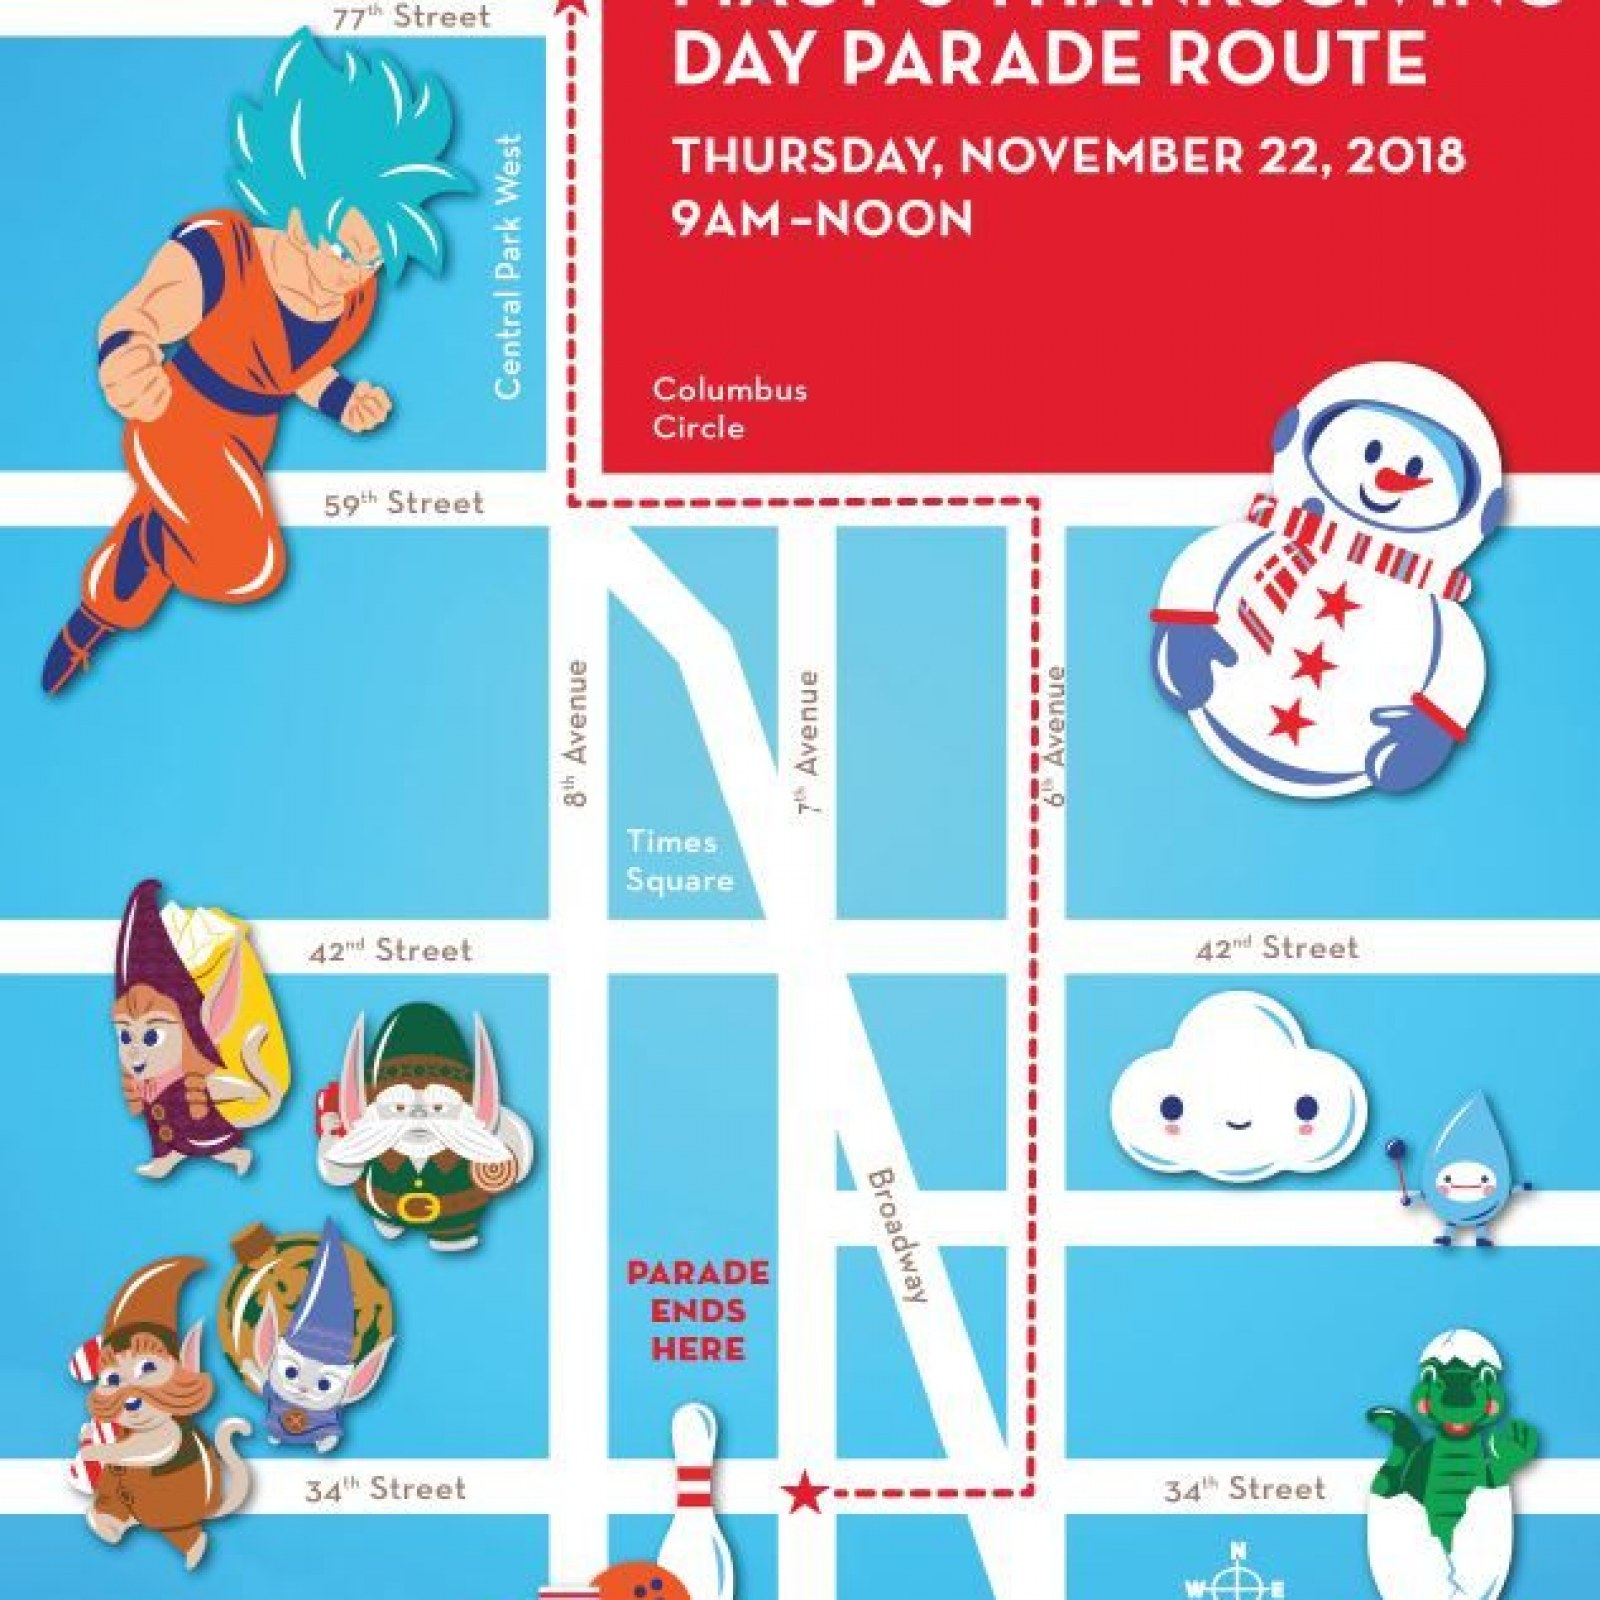 Macy's Thanks Day Parade Time 2018: New York City ... on macy's nyc map, macy's app, macy's store, macy's restaurant nyc, macy's floor plan, macy's kitchen islands, the metropolitan museum of art map, macy's layout, hell's kitchen map, macy's new york, macy's department map, macy's hours, macy's icon, macy's furniture gallery, micello indoor map, st. patrick's cathedral map, macy parade map, macy's manhattan map, macy's floor map, john f. kennedy international airport map,